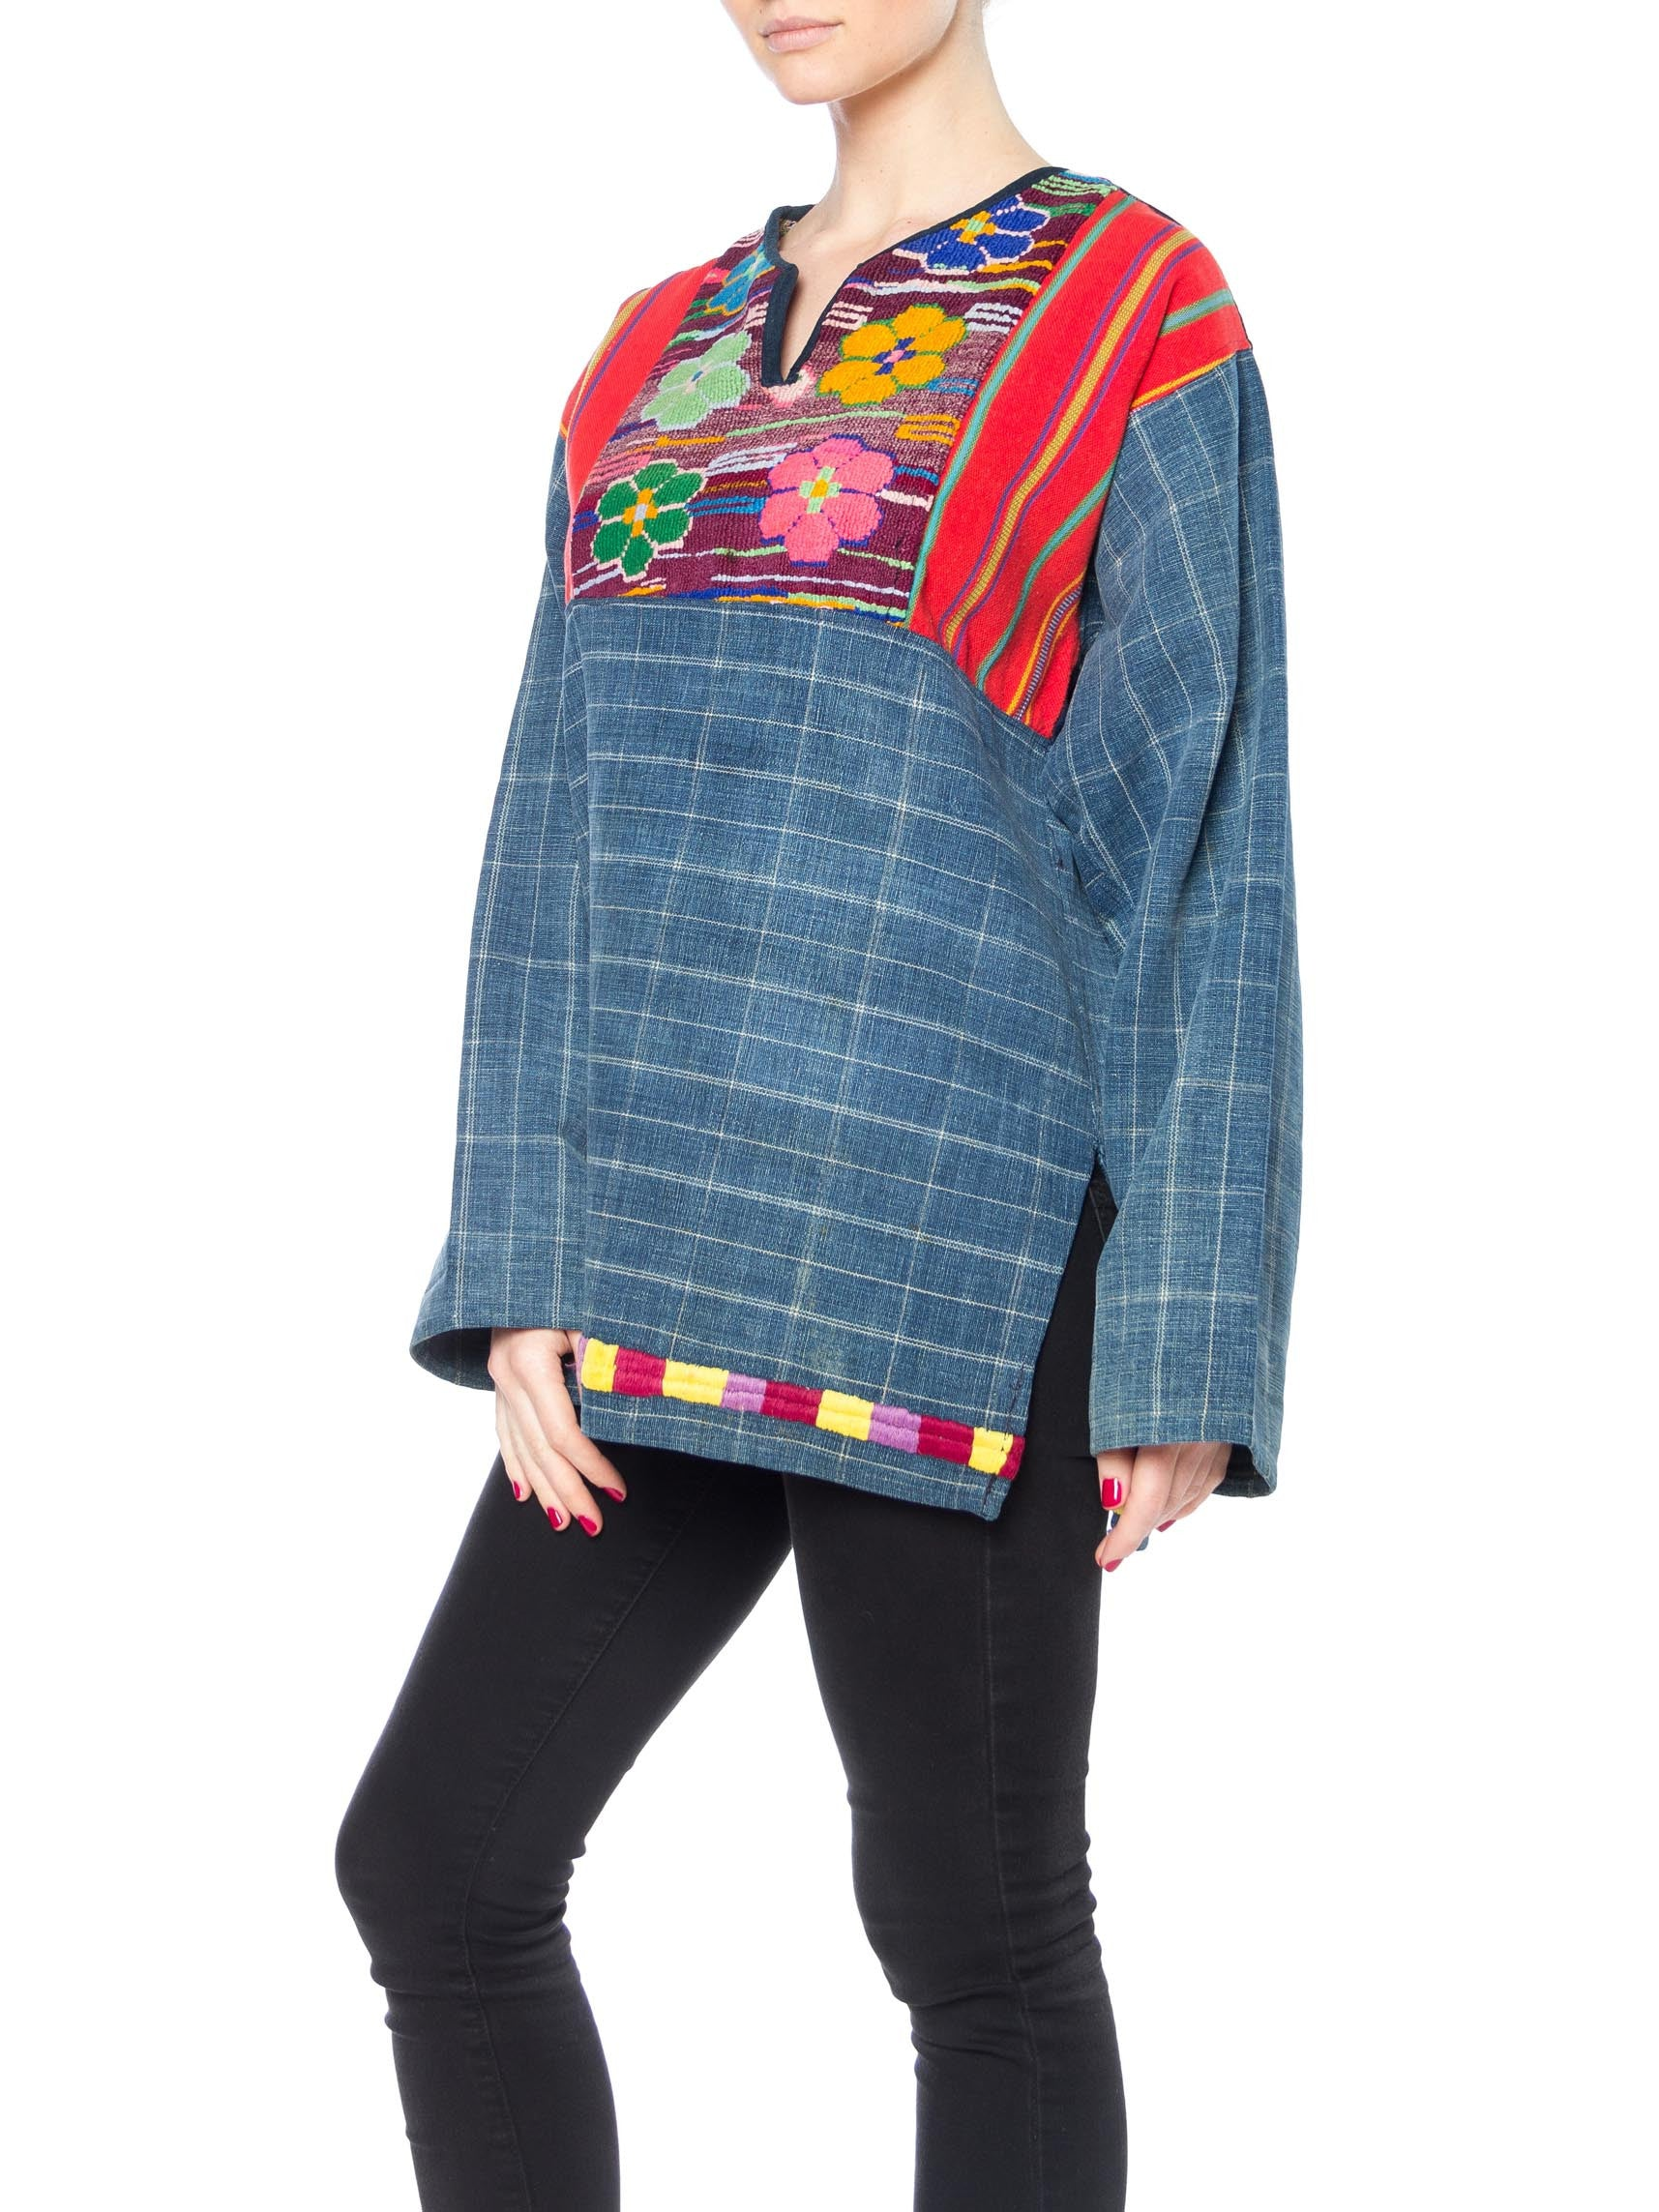 1970S Indigo Blue Cotton South American Pullover Top With Colorful Handwoven & Embroidered Details